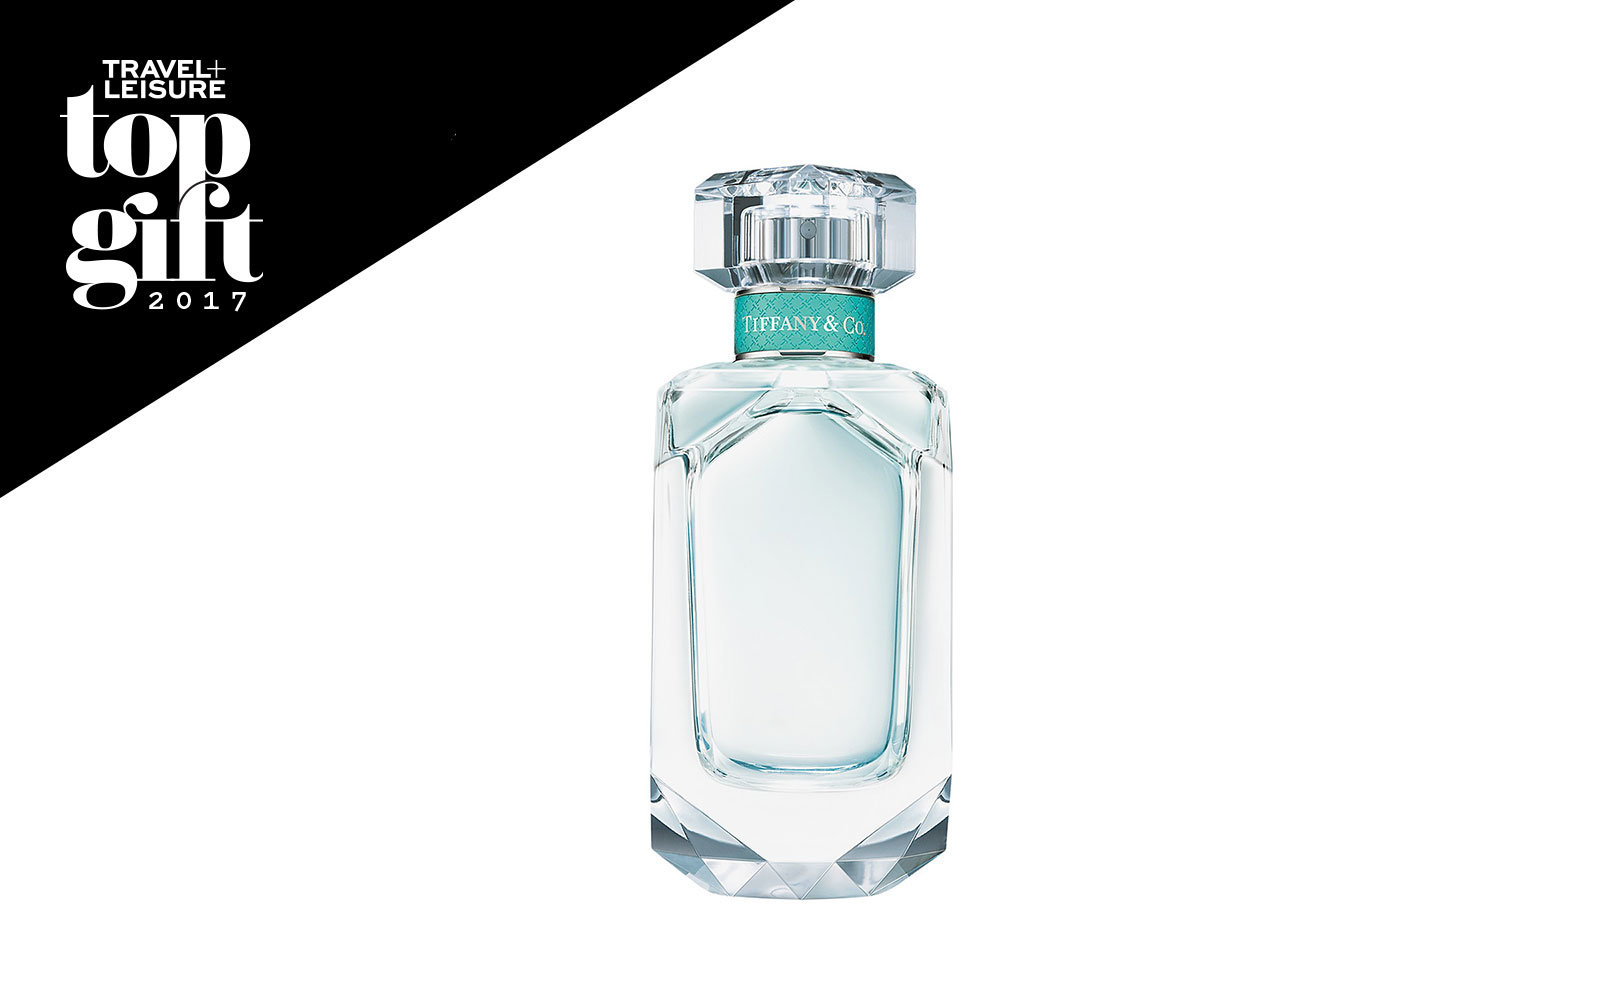 Tiffany & Co. Perfume